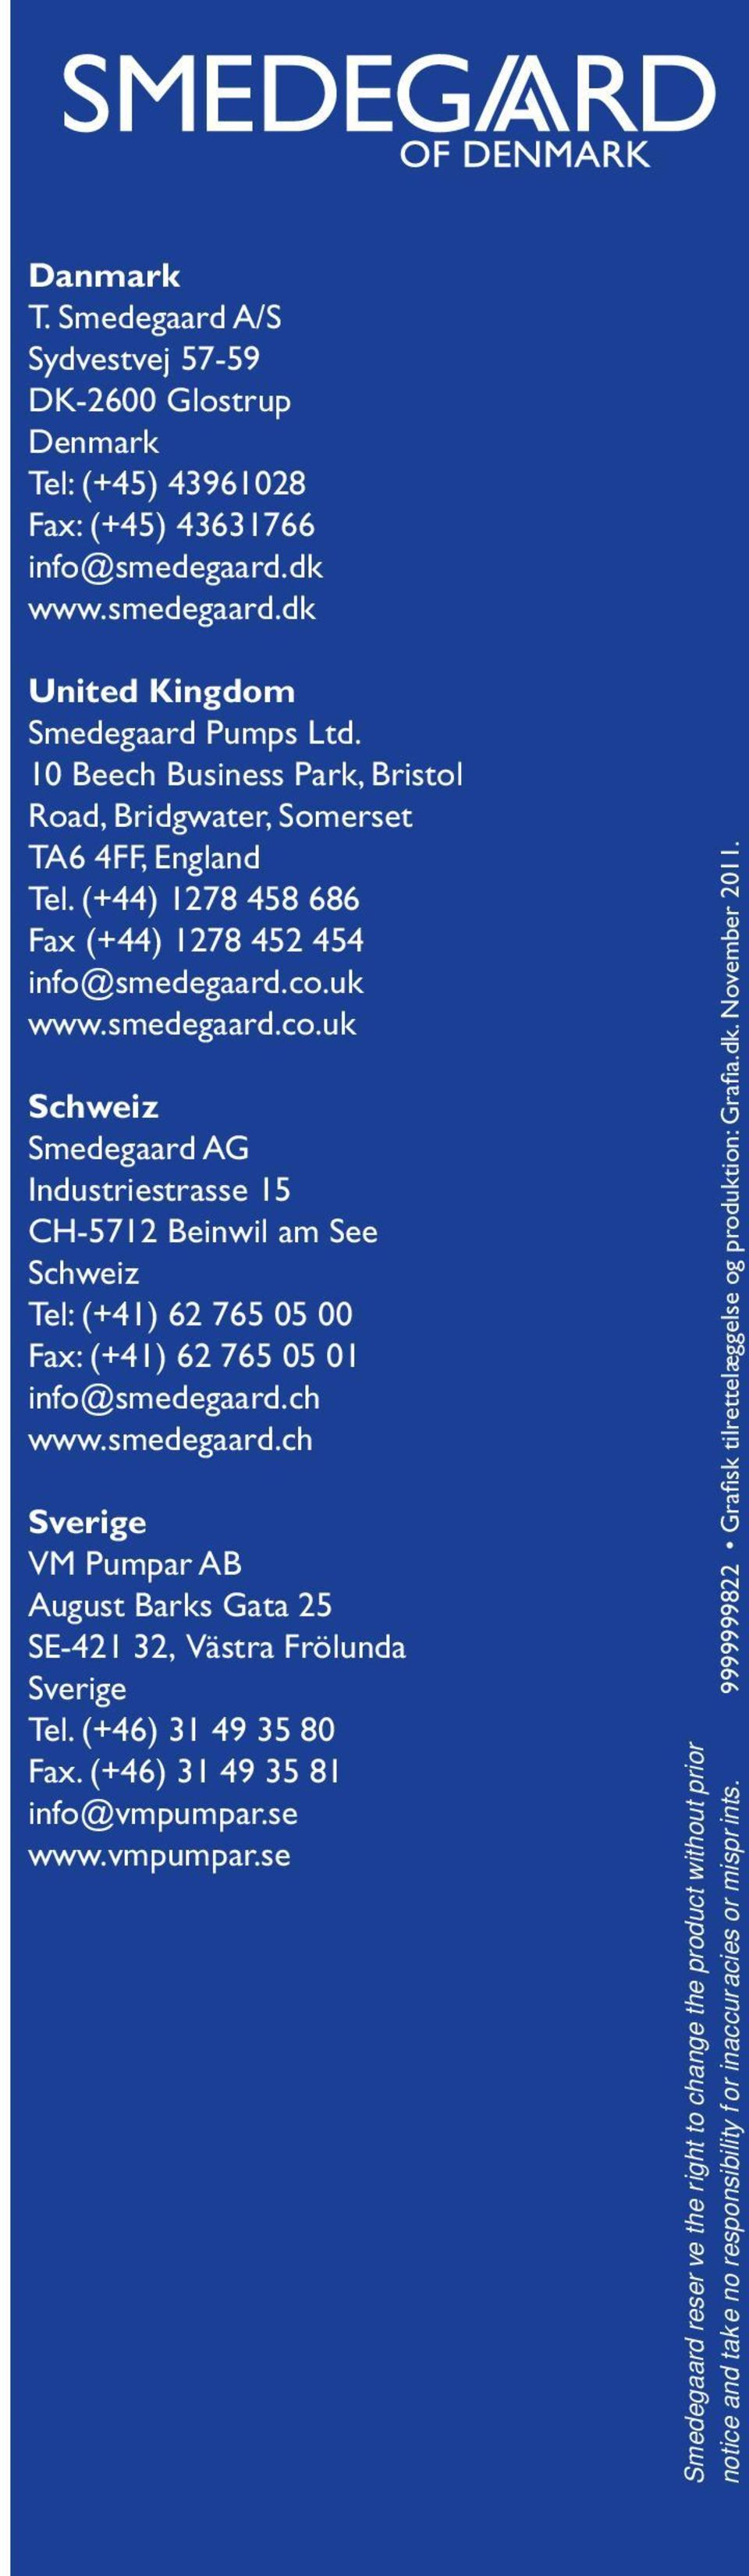 uk www.smedegaard.co.uk Schweiz Smedegaard AG Industriestrasse 15 CH-5712 Beinwil am See Schweiz Tel: (+41) 62 765 05 00 Fax: (+41) 62 765 05 01 info@smedegaard.ch www.smedegaard.ch Sverige VM Pumpar AB August Barks Gata 25 SE-421 32, Västra Frölunda Sverige Tel.